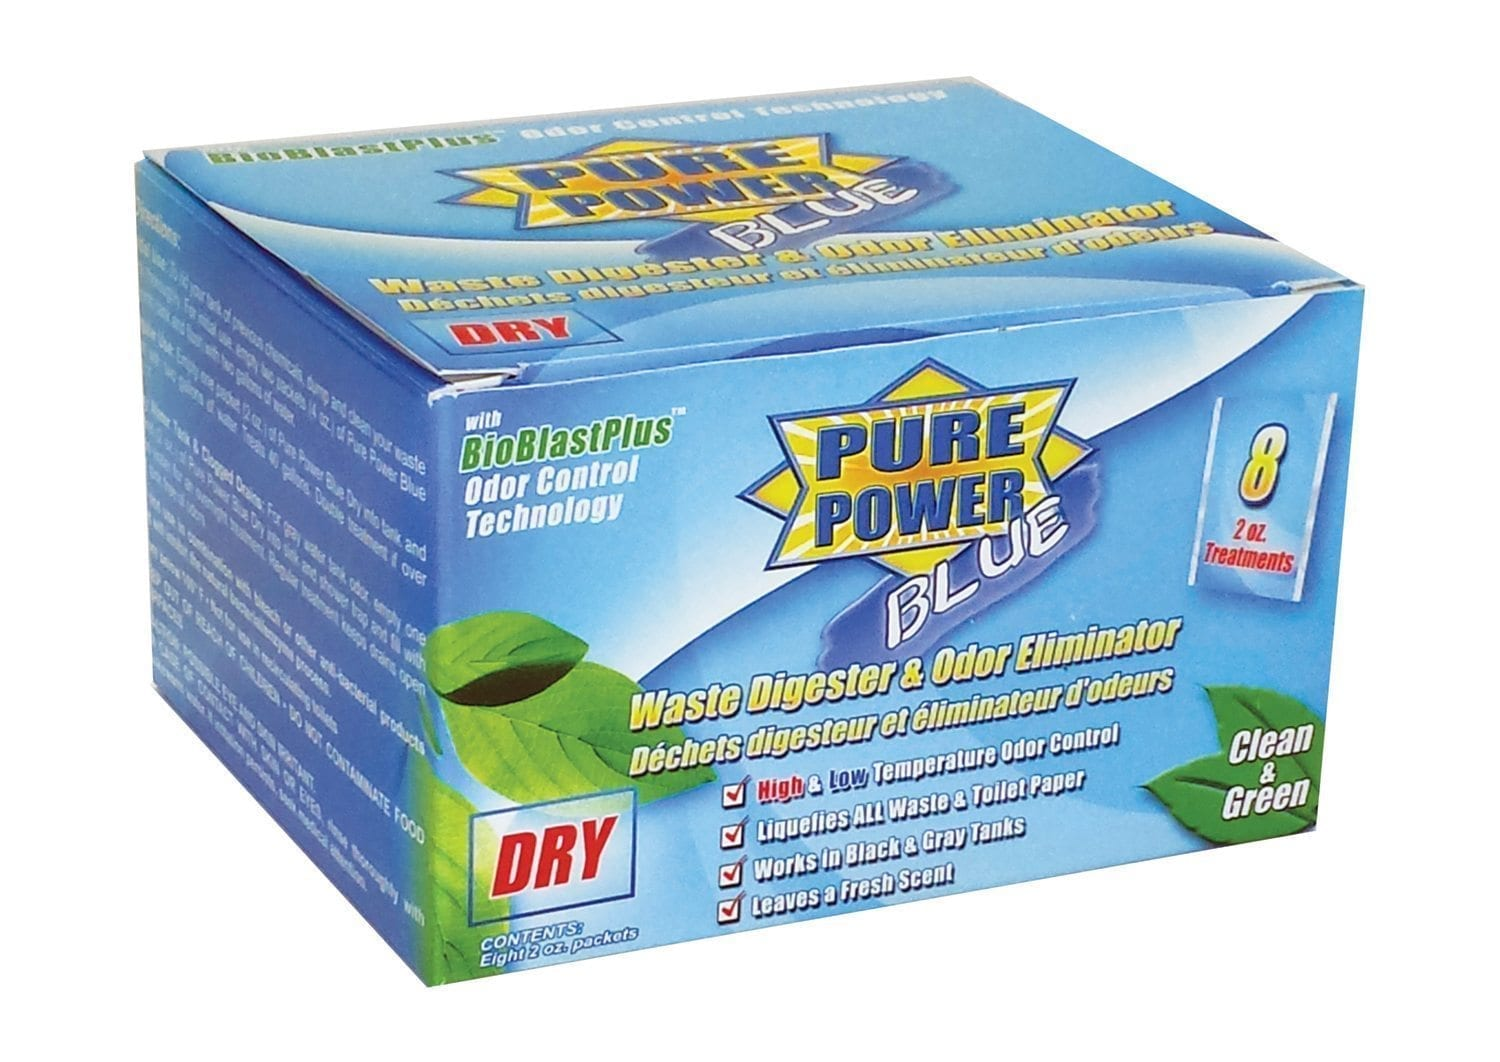 Valterra Pure Power Blue, Dry